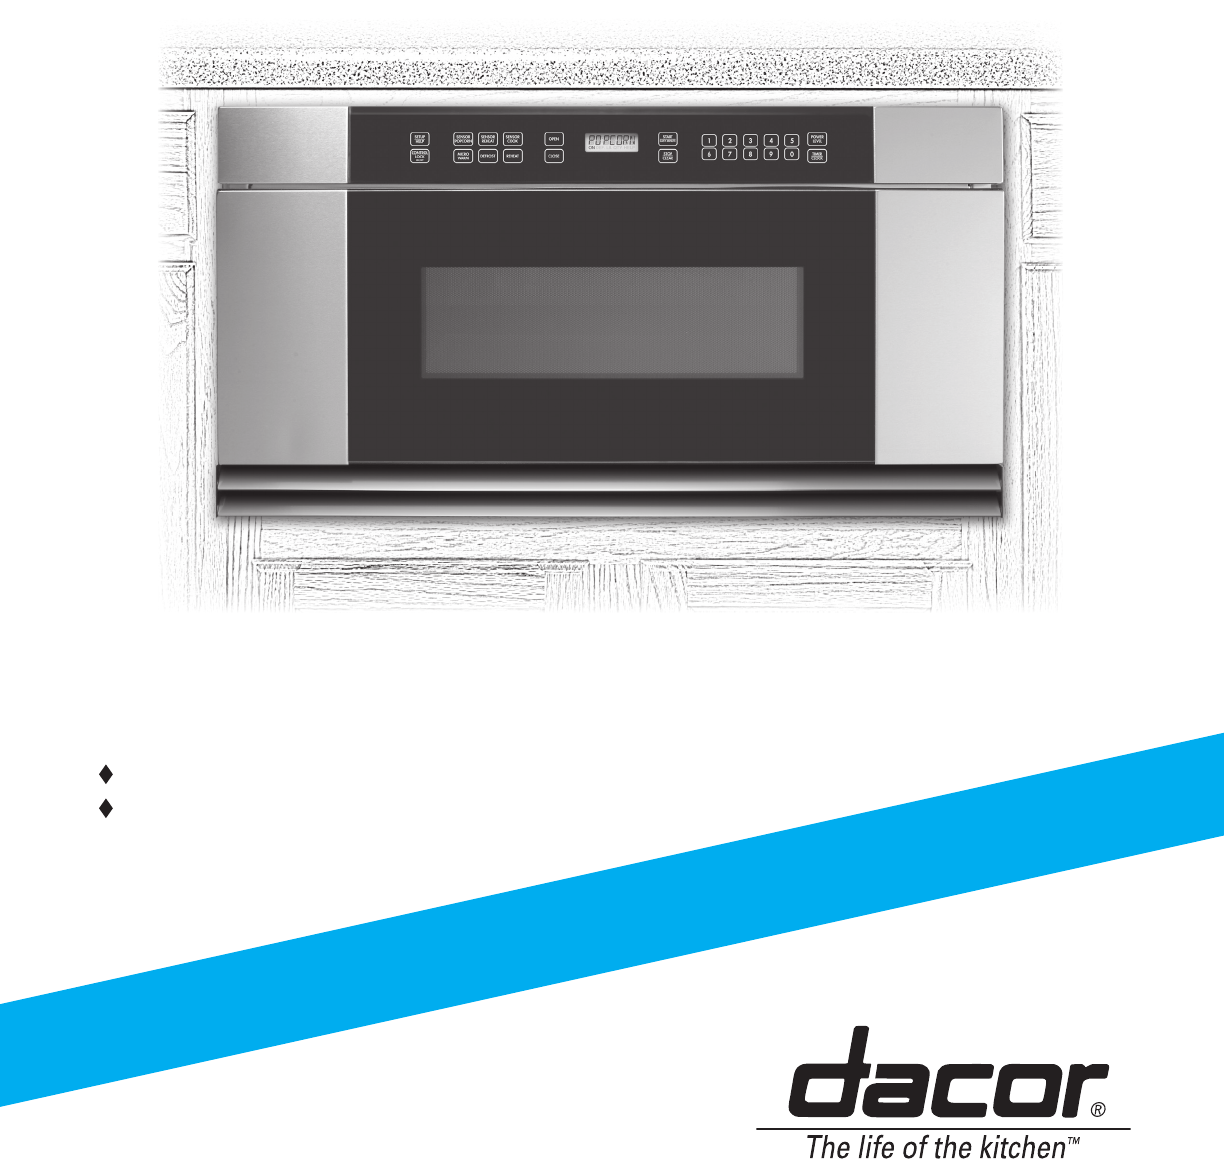 Dacor microwave oven mmdh30s user guide for Decor microwave